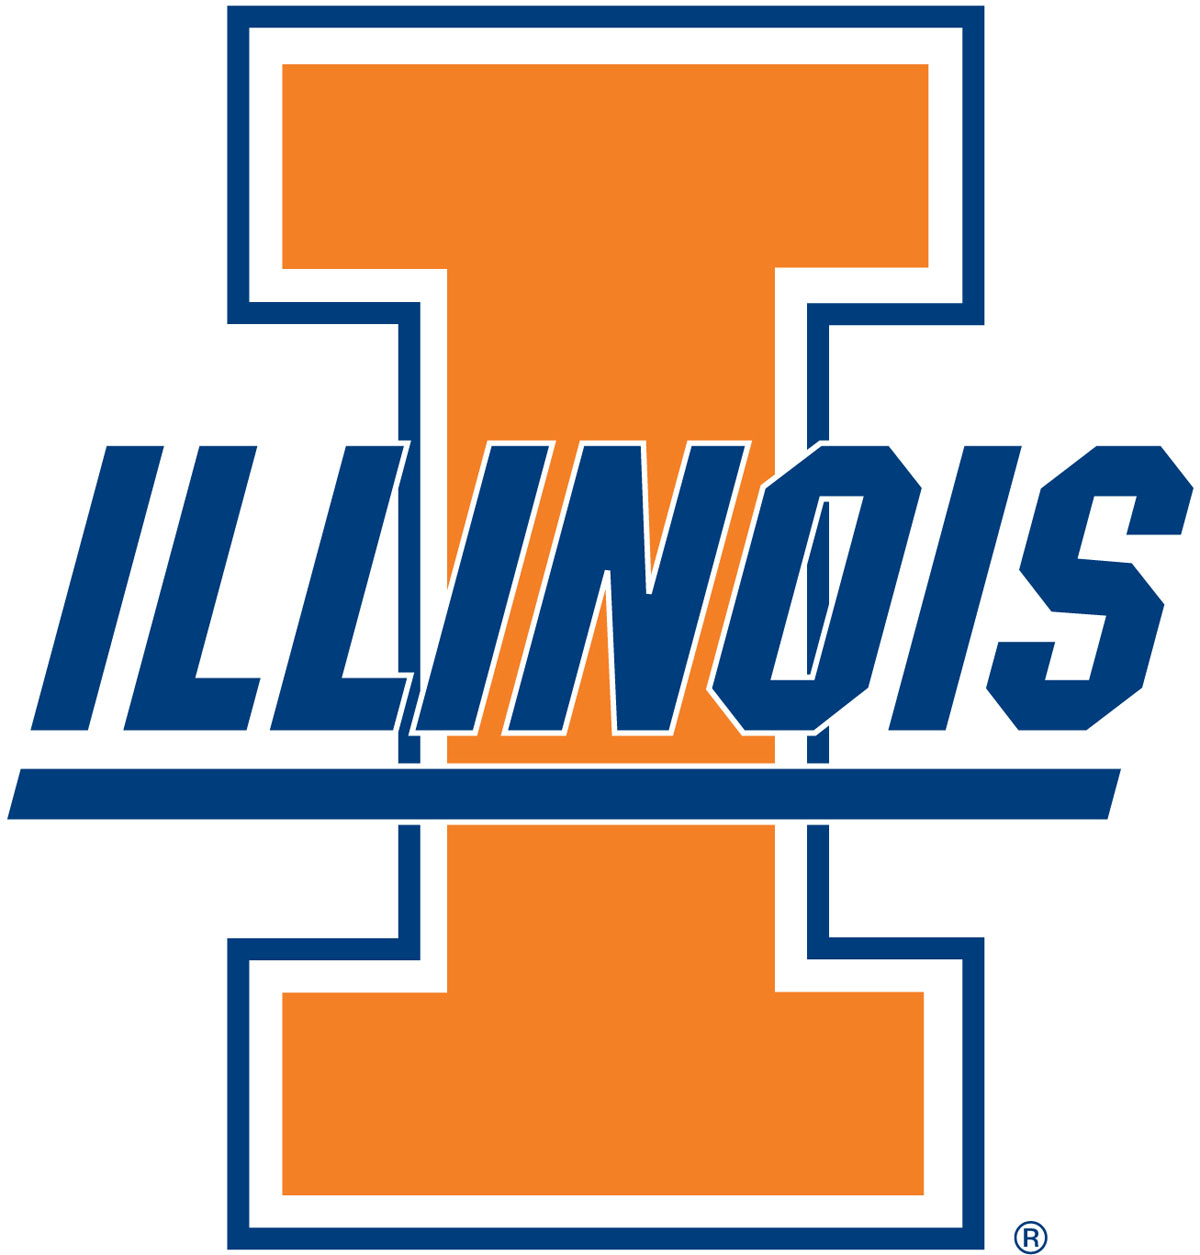 Illinois Fighting Illini Football Wallpaper   Big Ten Football Online 1200x1255